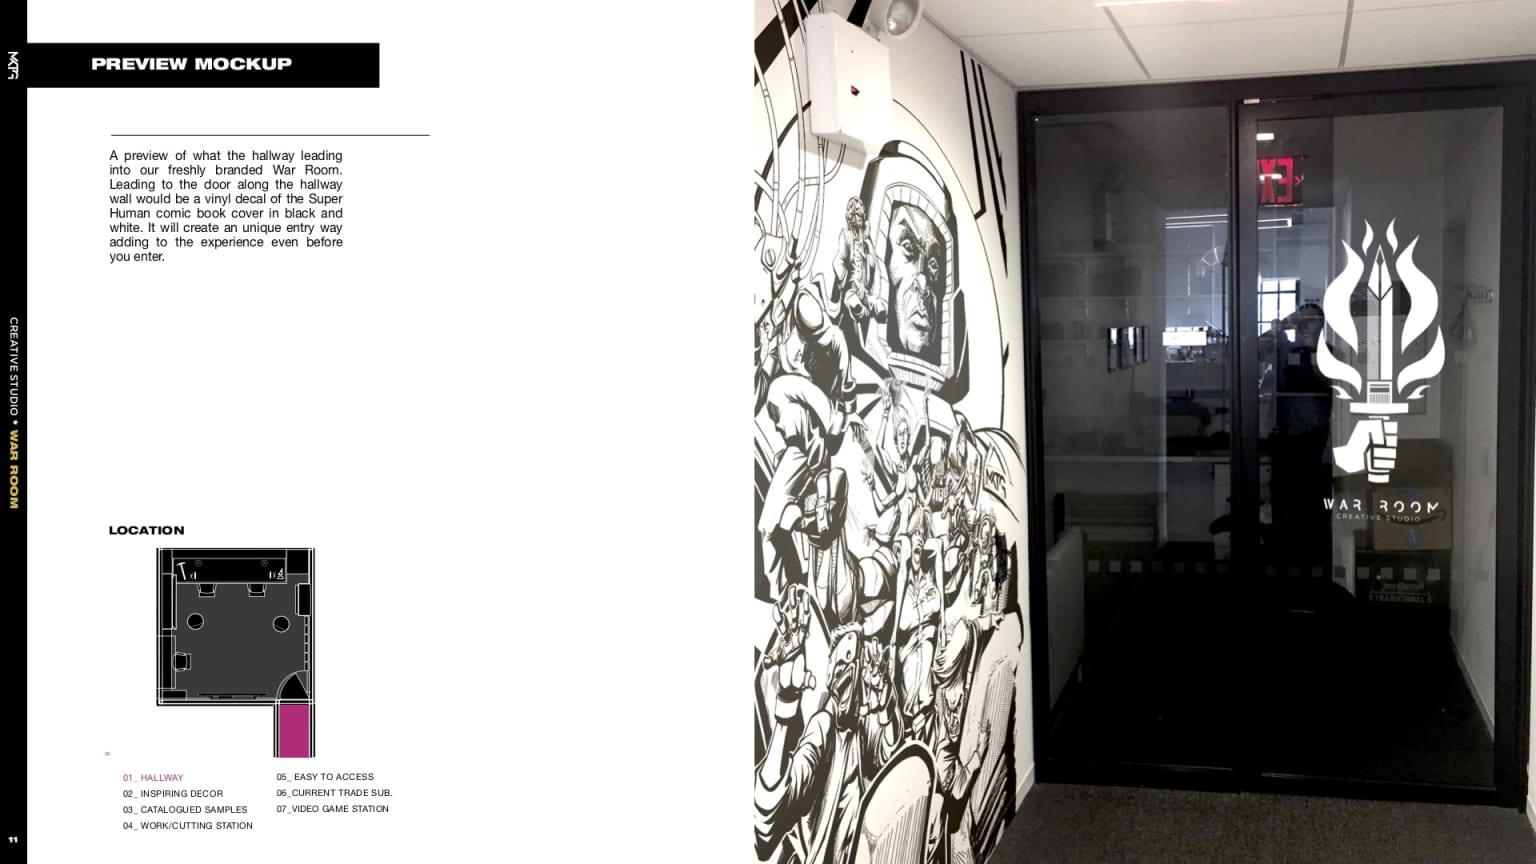 War Room - branding and space redesign